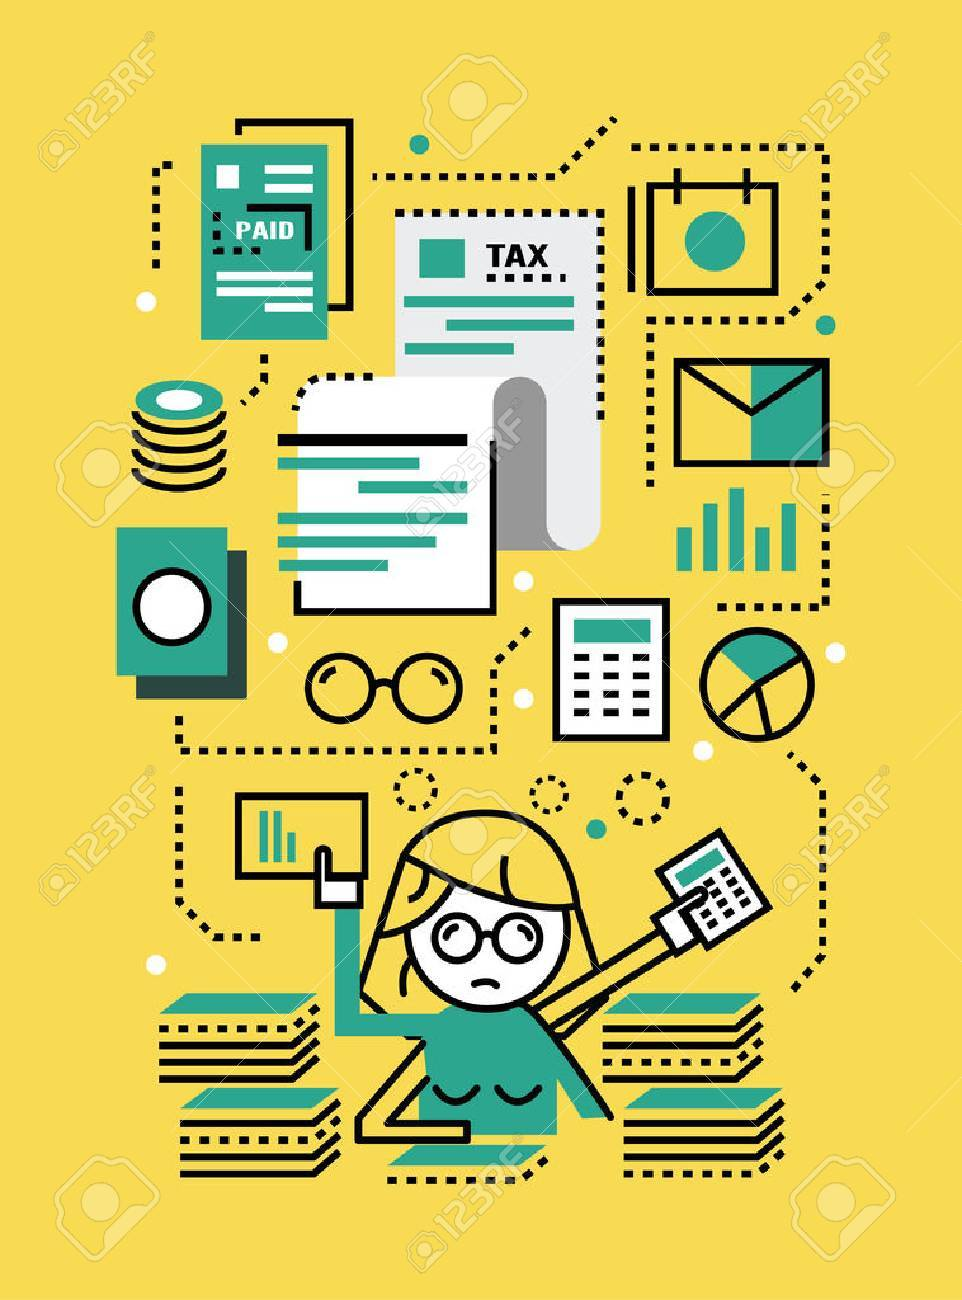 Busy Business woman with Tax documents. Tax concept. flat line icons design. vector illustration - 49256929